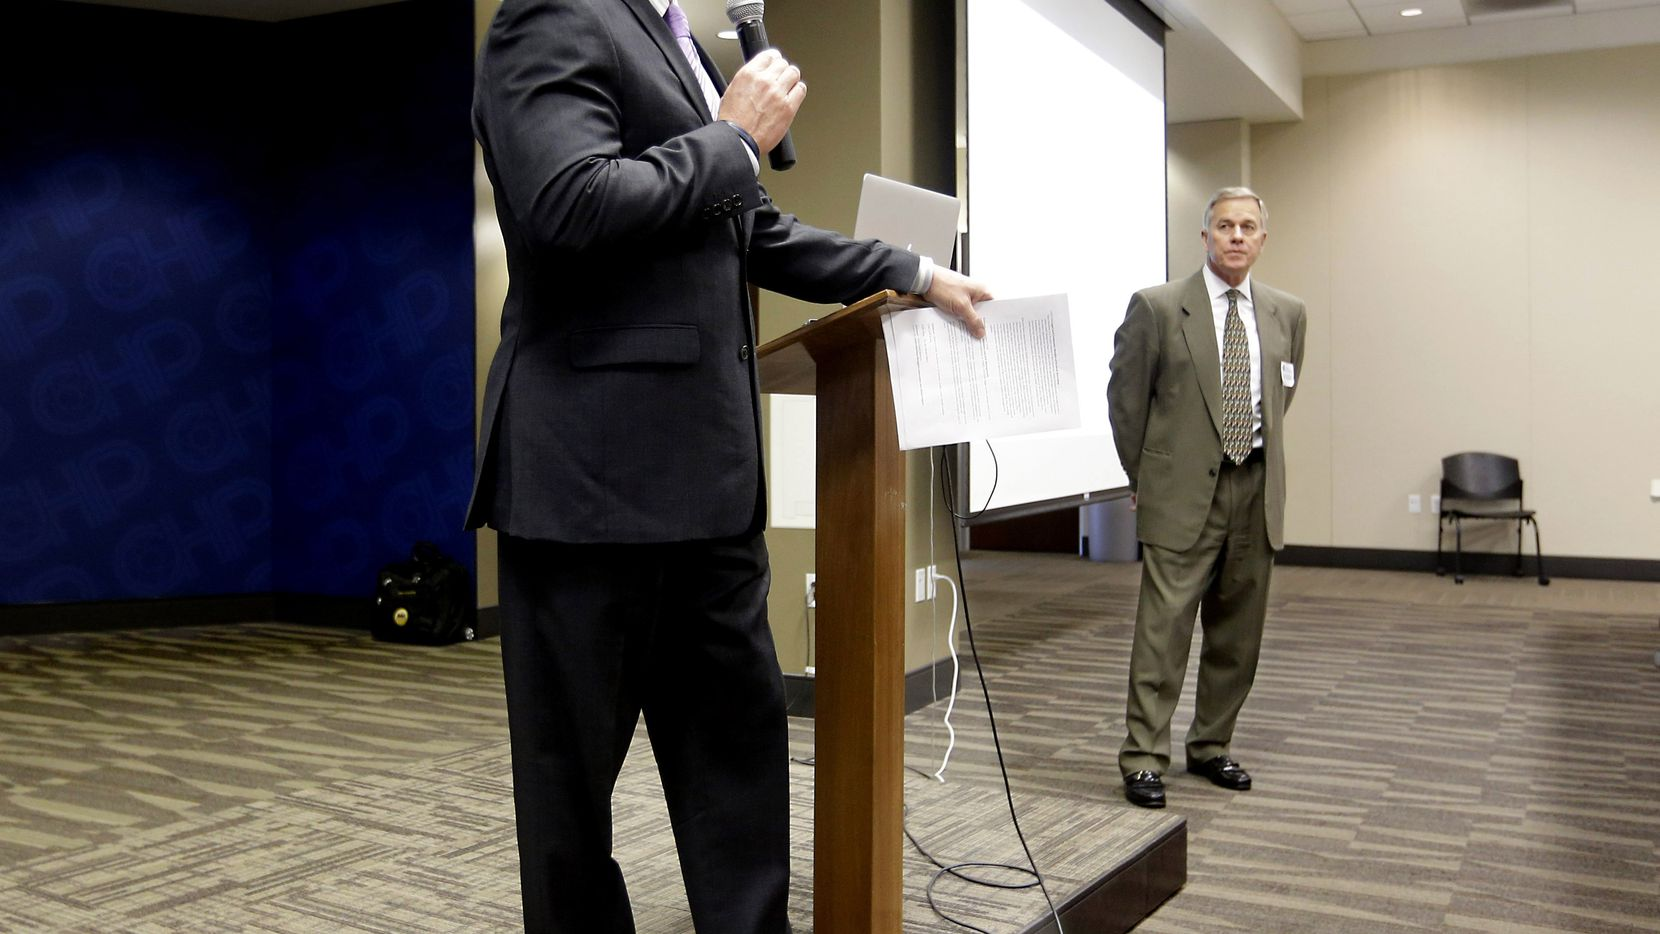 In this photo taken Thursday, Feb. 19, 2015, retired Fort Worth Police Chief Jeffery Halstead, left, introduces retired Cincinnati Police Chief Tom Streicher, during a presentation at a conference hosted by Taser International at the California Highway Patrol Headquarters in Sacramento, Calif.  Halstead successfully pushed the city of Fort Worth to approve a no-bid contract worth up $2.7 to purchase body cameras from Taser, the stun-gun maker that is now the leading supplier of body cameras for police. A review by The Associated Press shows Taser is covering airfare and hotel stays for police chiefs who travel to speak at the company's marketing conferences. It is also hiring some recently retired chiefs as consultants, sometimes months after their cities signed contracts with Taser.(AP Photo/Rich Pedroncelli)